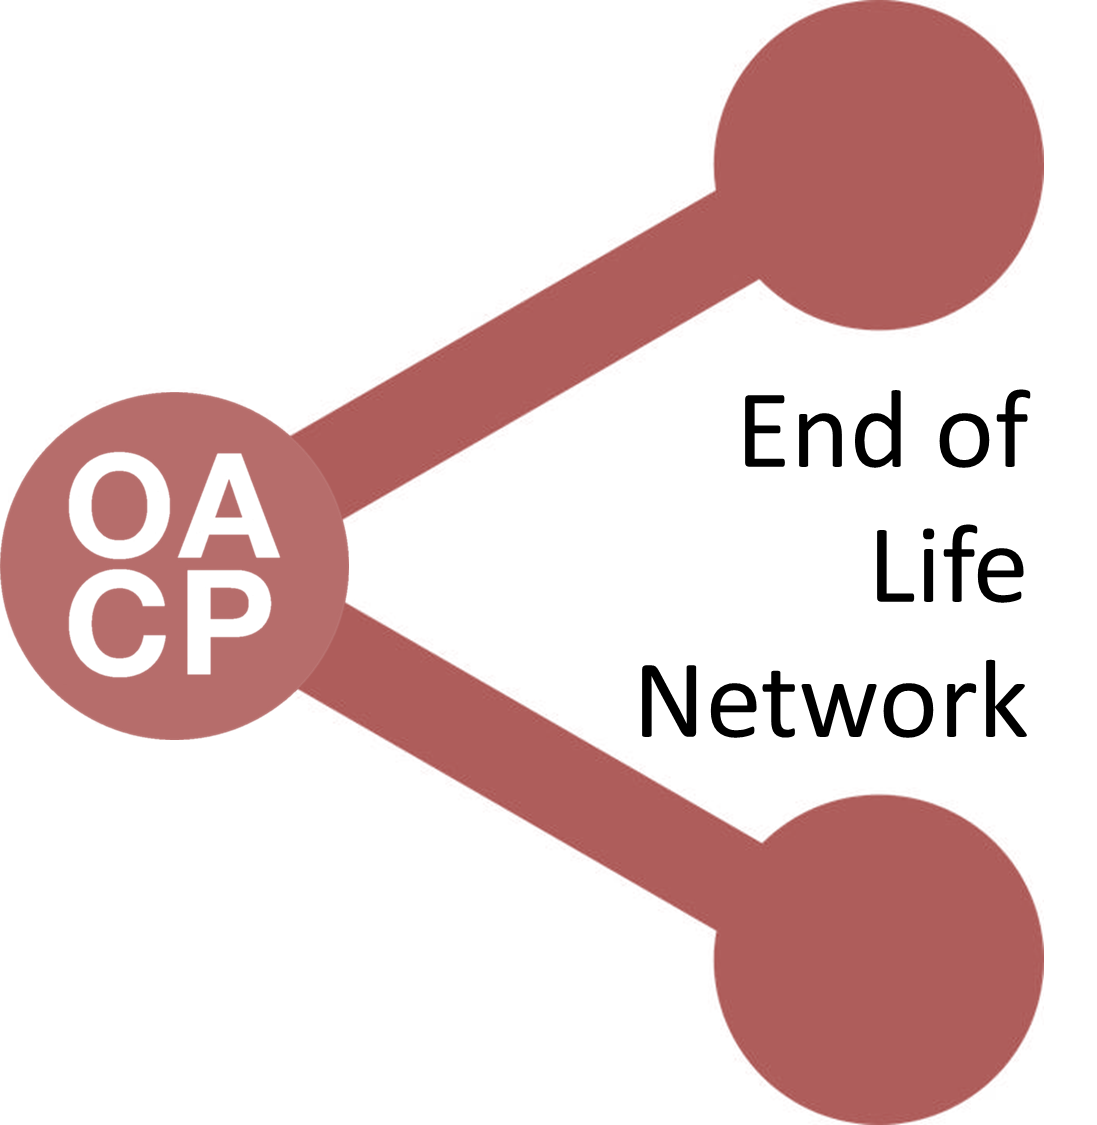 Image for OACP end of life network